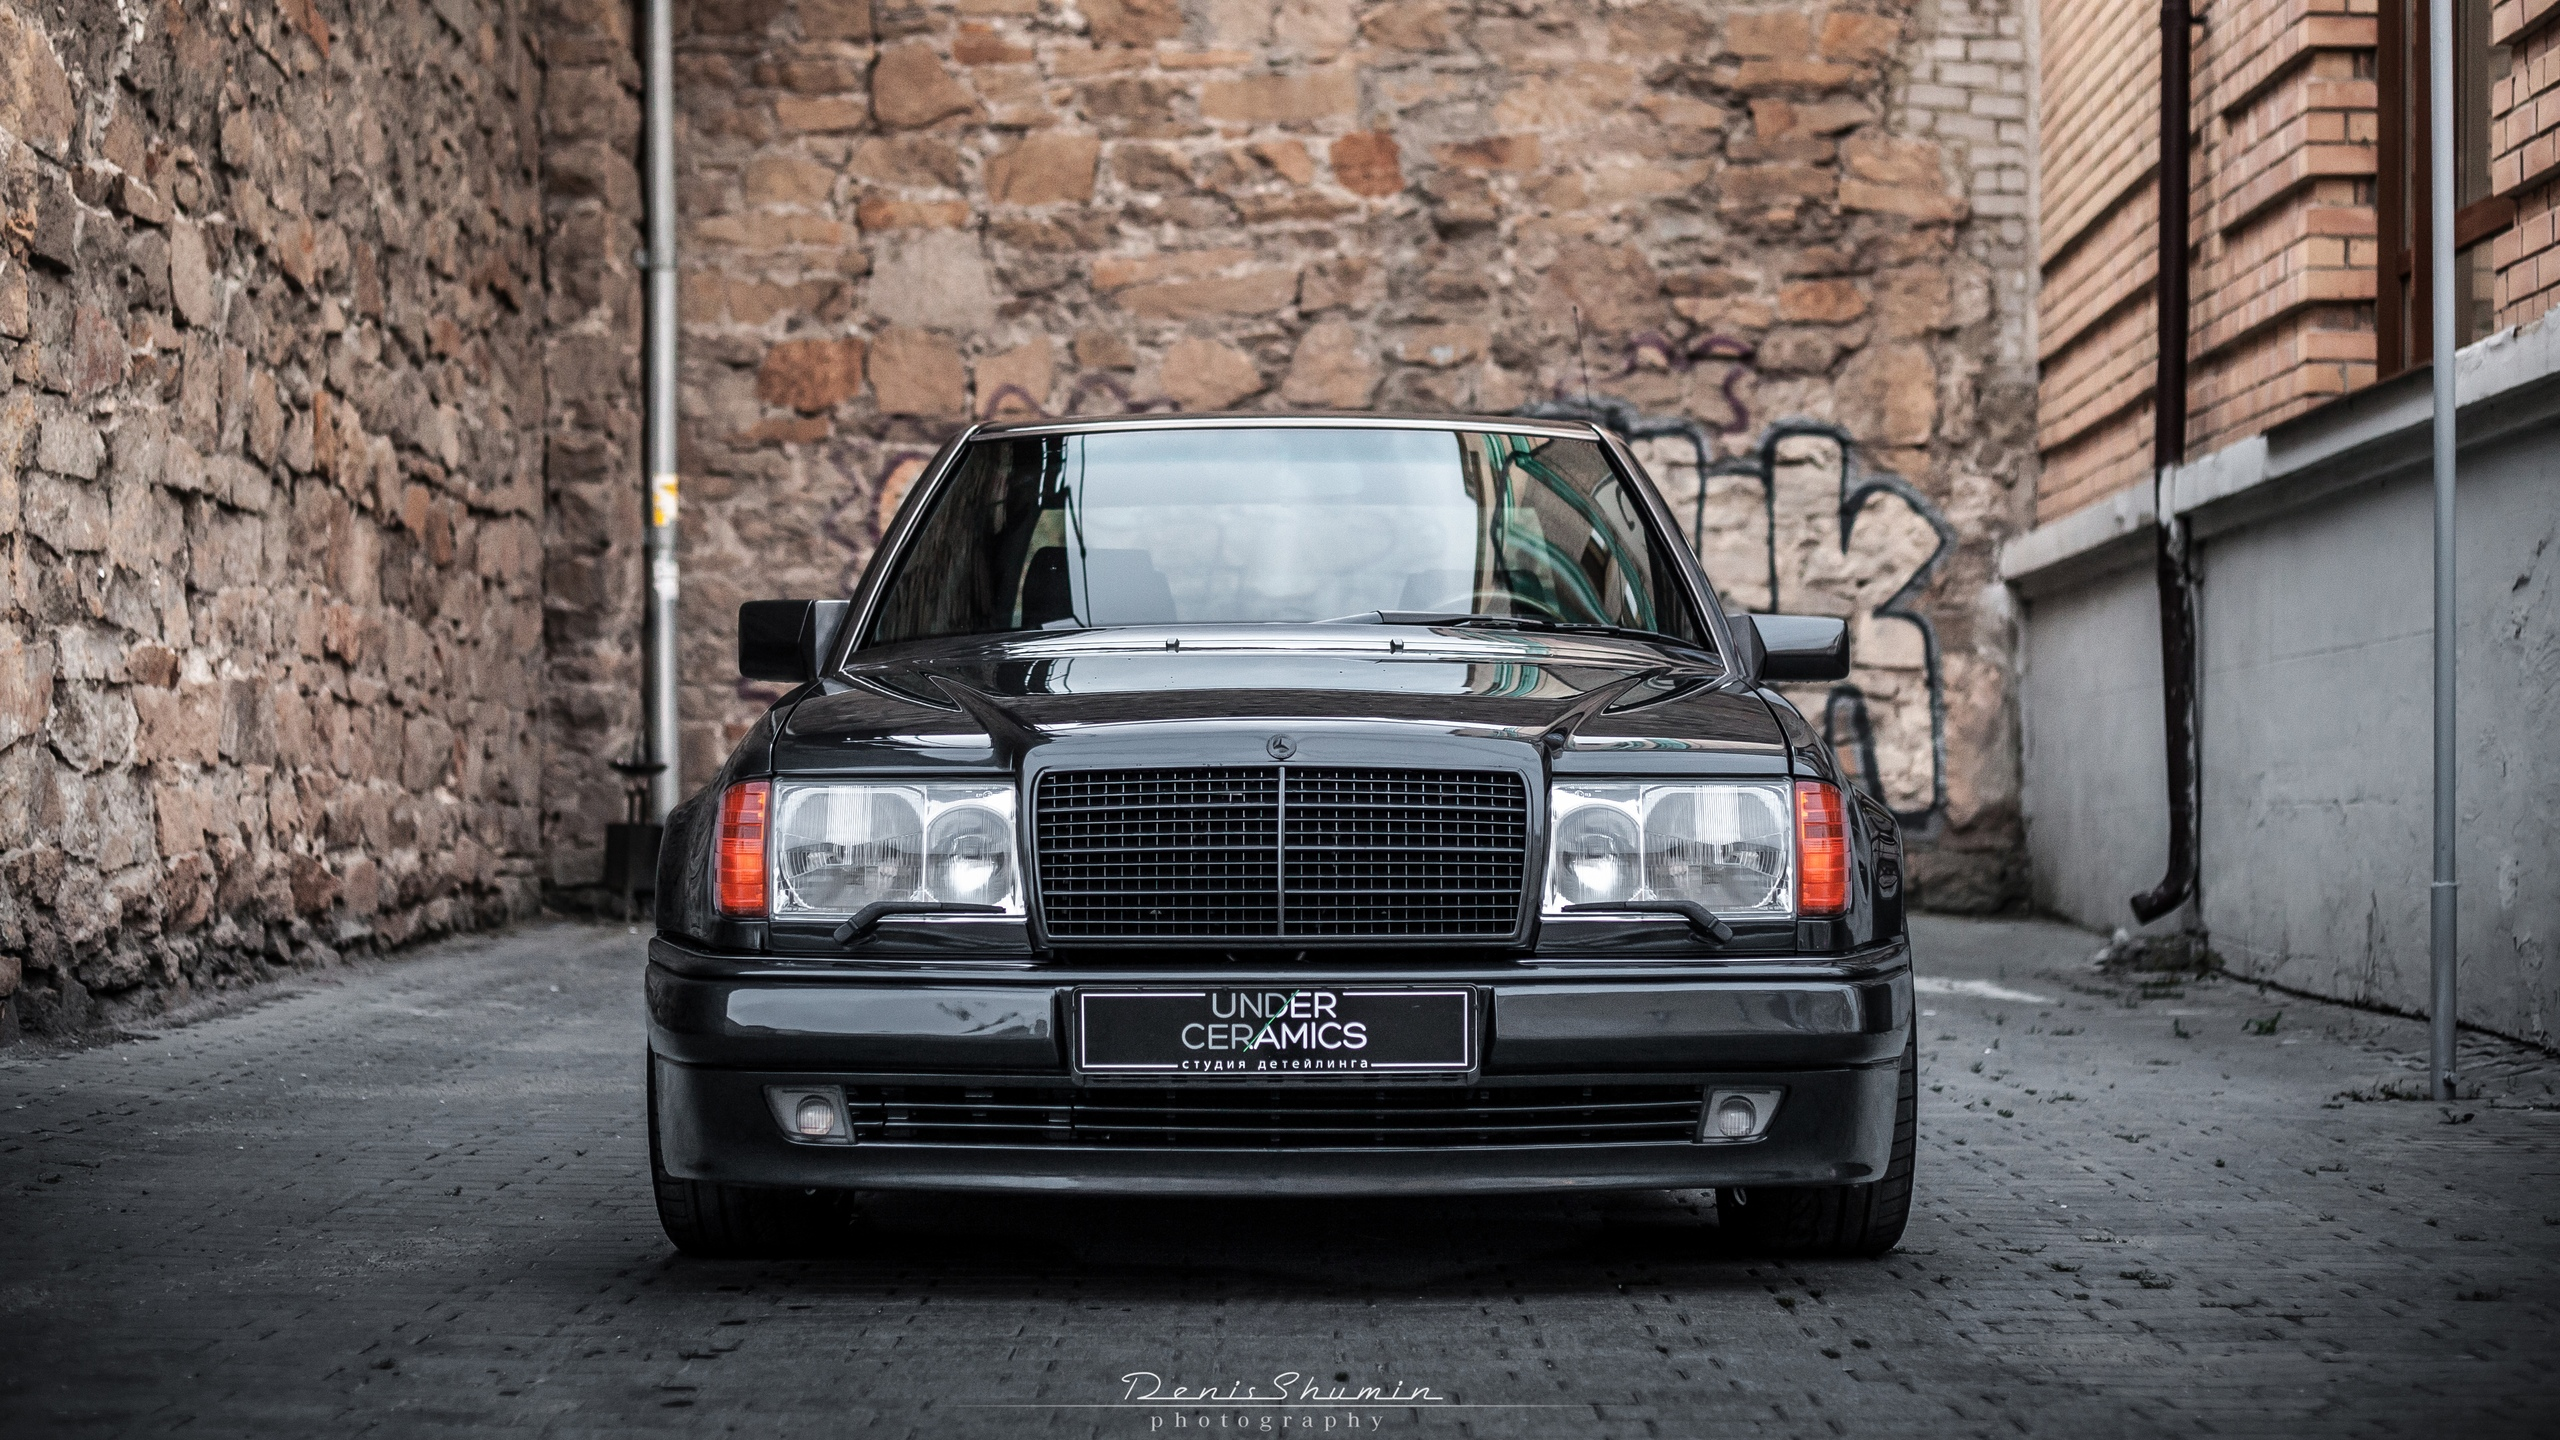 Built with the Mercedes-Benz 500E as a starting point, the Brabus W124 6.0 counts among the most popular Brabus cars ever made. It came out in 1994, but is still highly sought after by car collectors